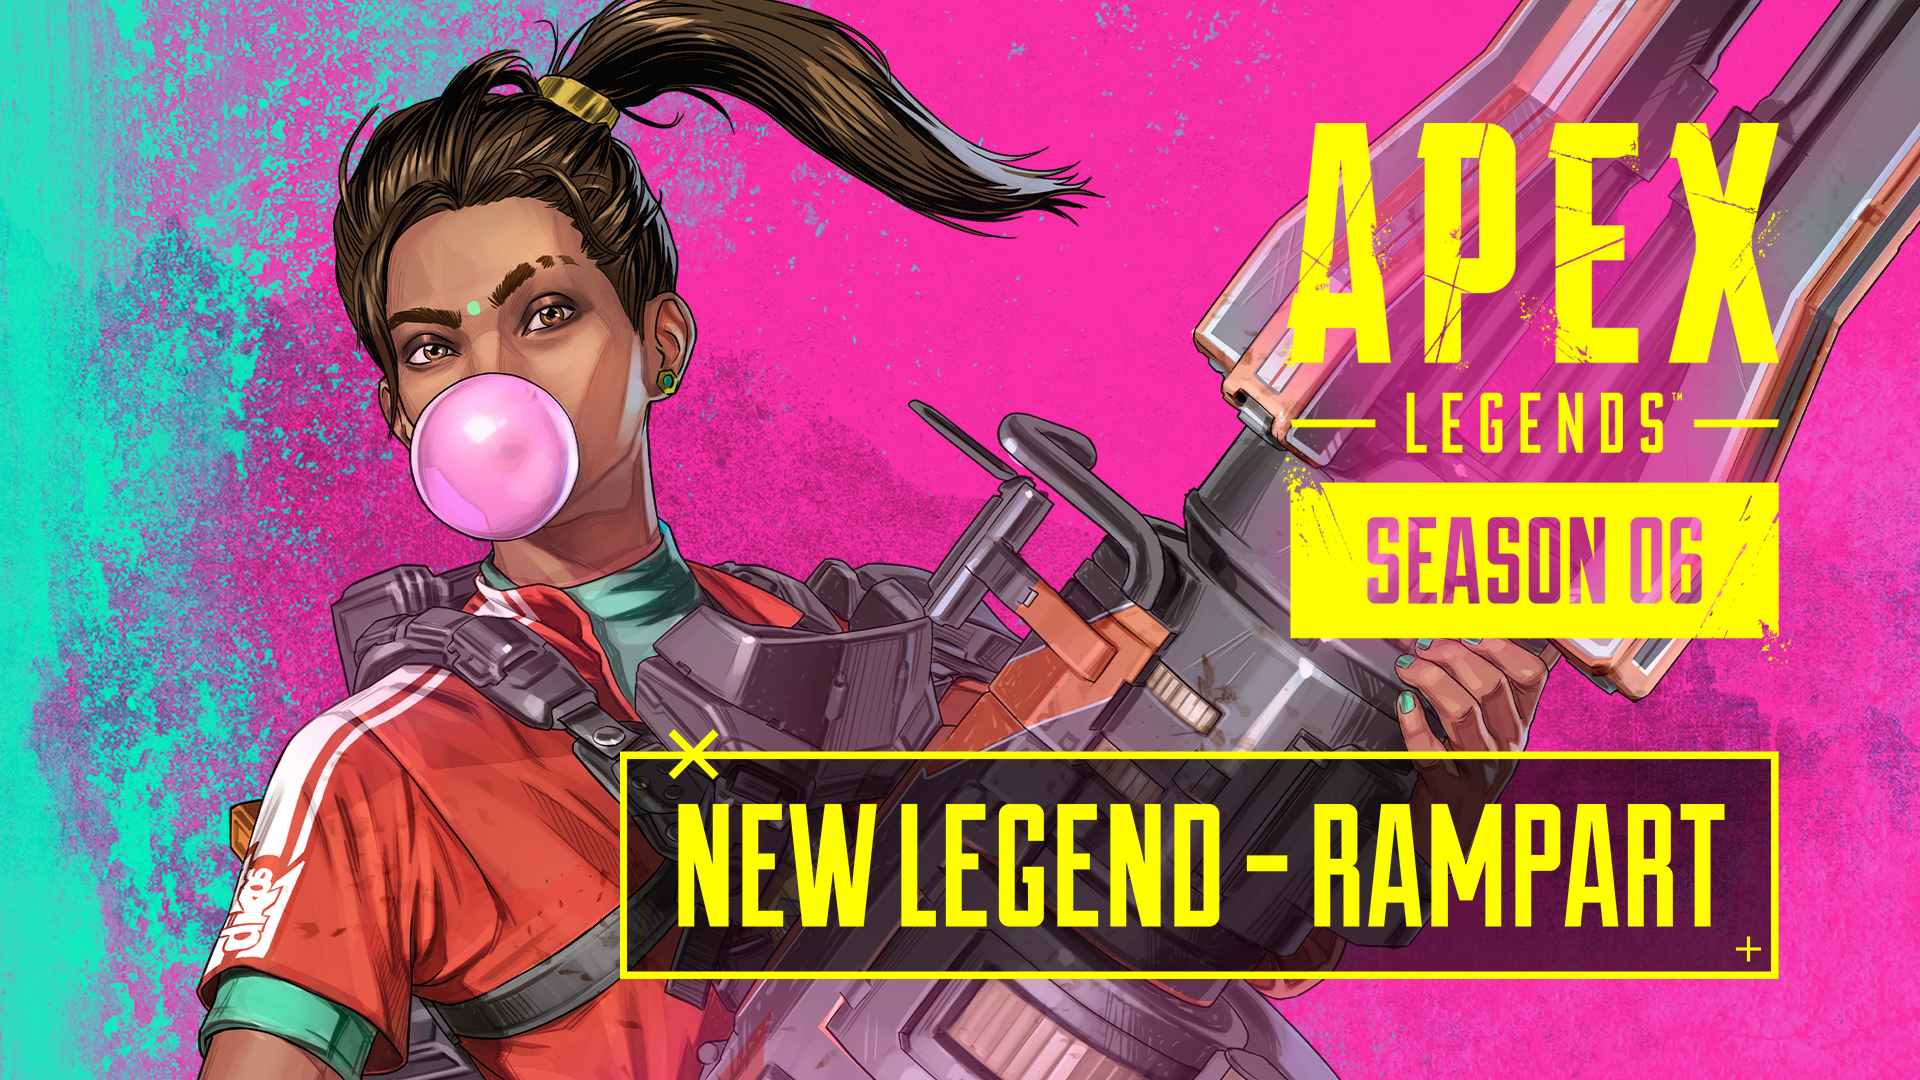 Apex_Thumbnail_Season_6_Legend_Rampart_1p